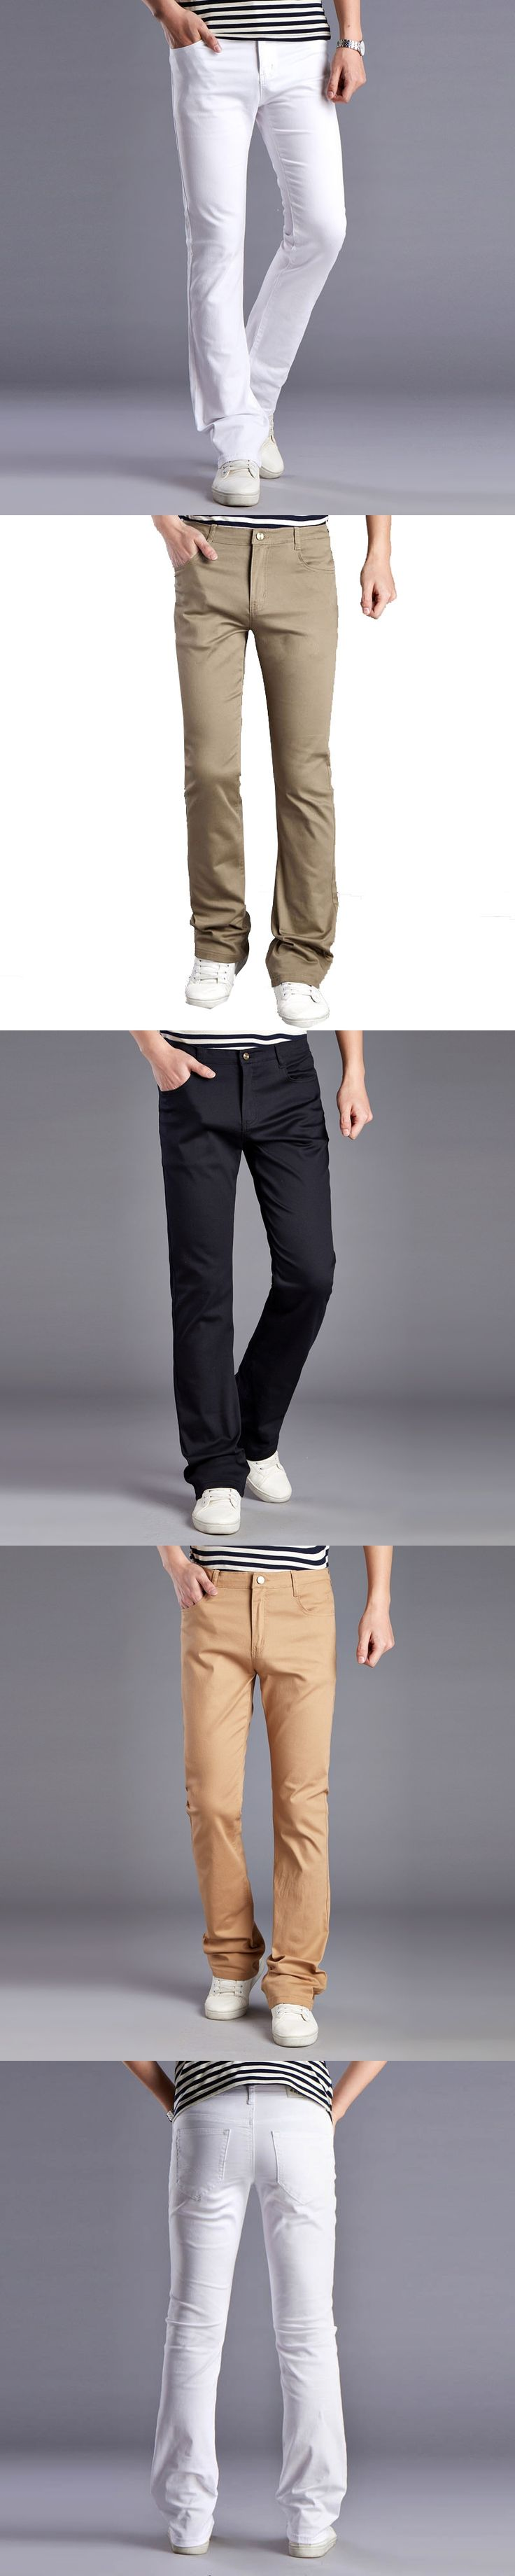 Men White Designers  Jeans Pants Fashion Casual Mens Wide Leg Bell Bottom Jeans Men's  Slim Denim Trousers